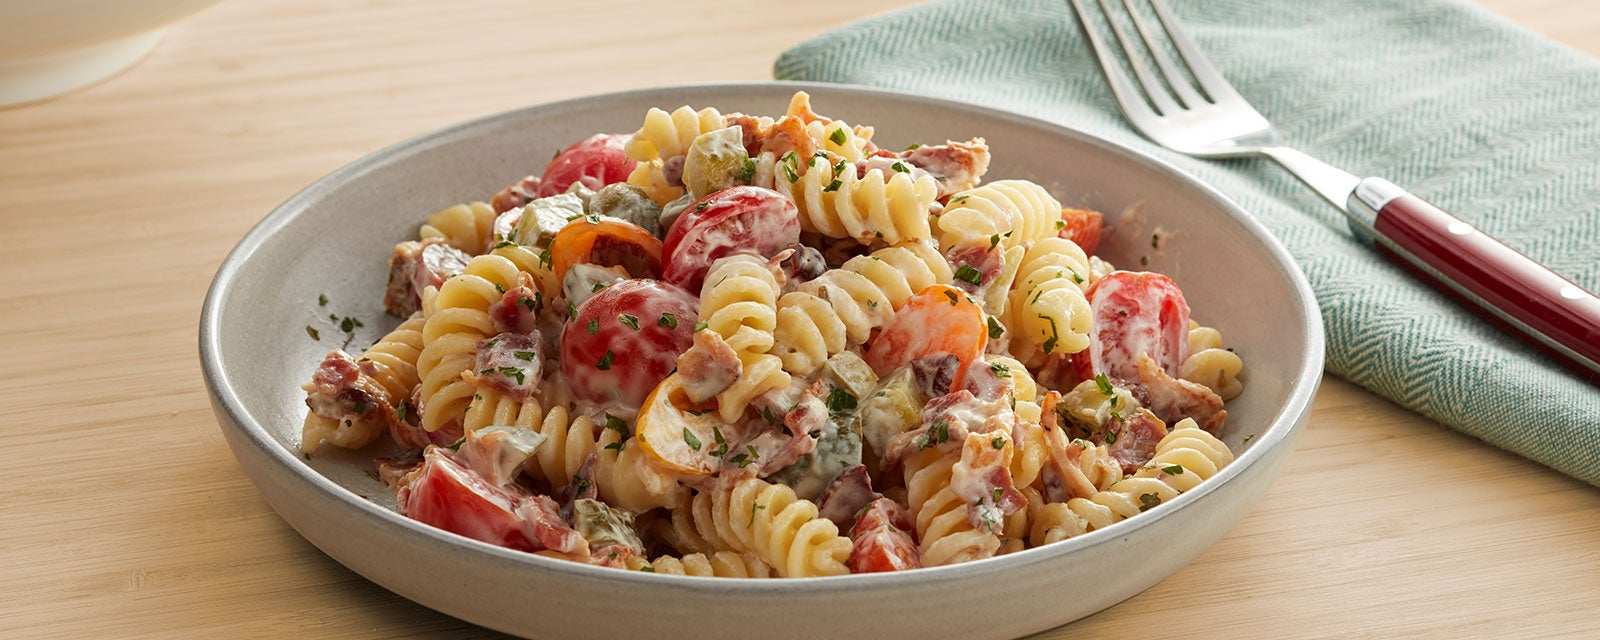 Dill Pickle Ranch Pasta Salad